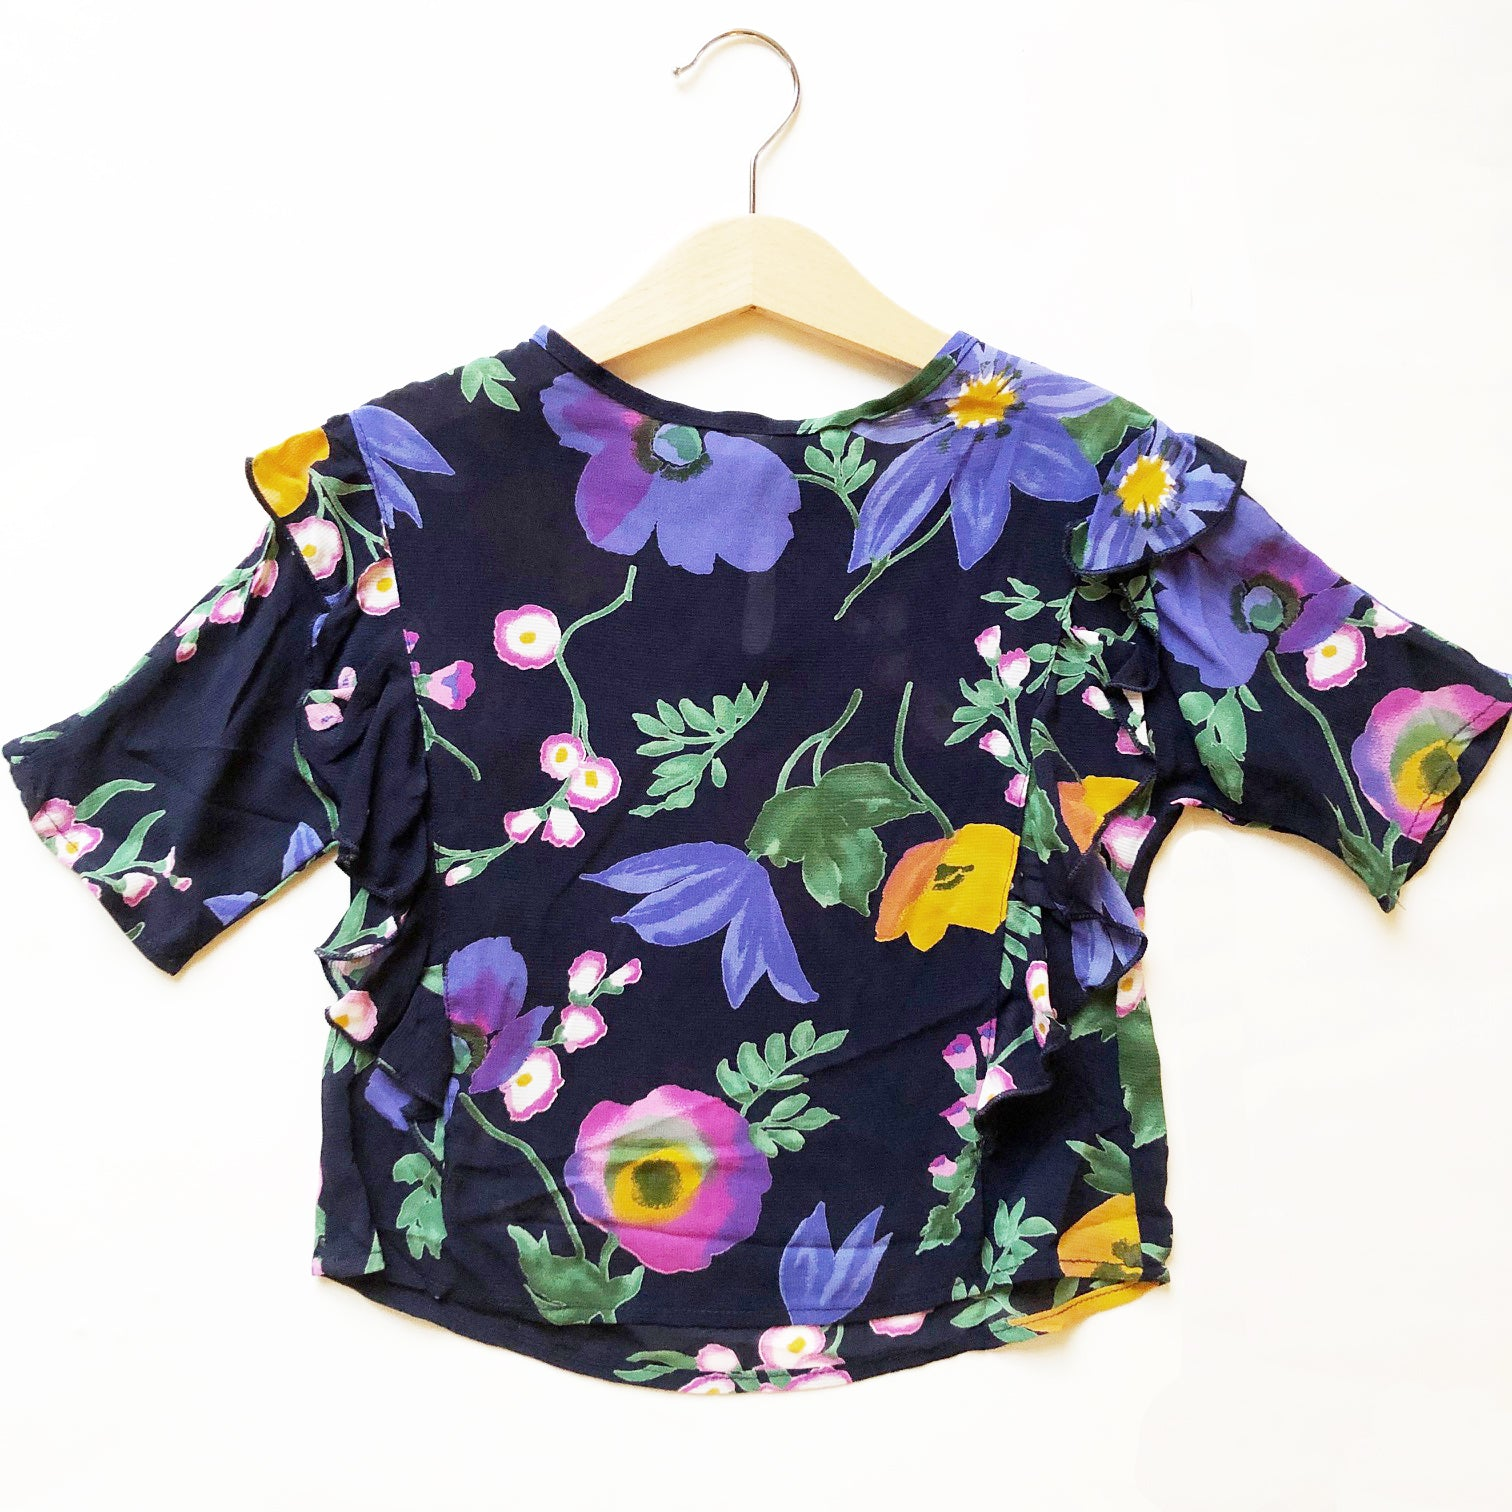 Ava Re-purposed Ruffle Blouse in Floral Georgette size 4